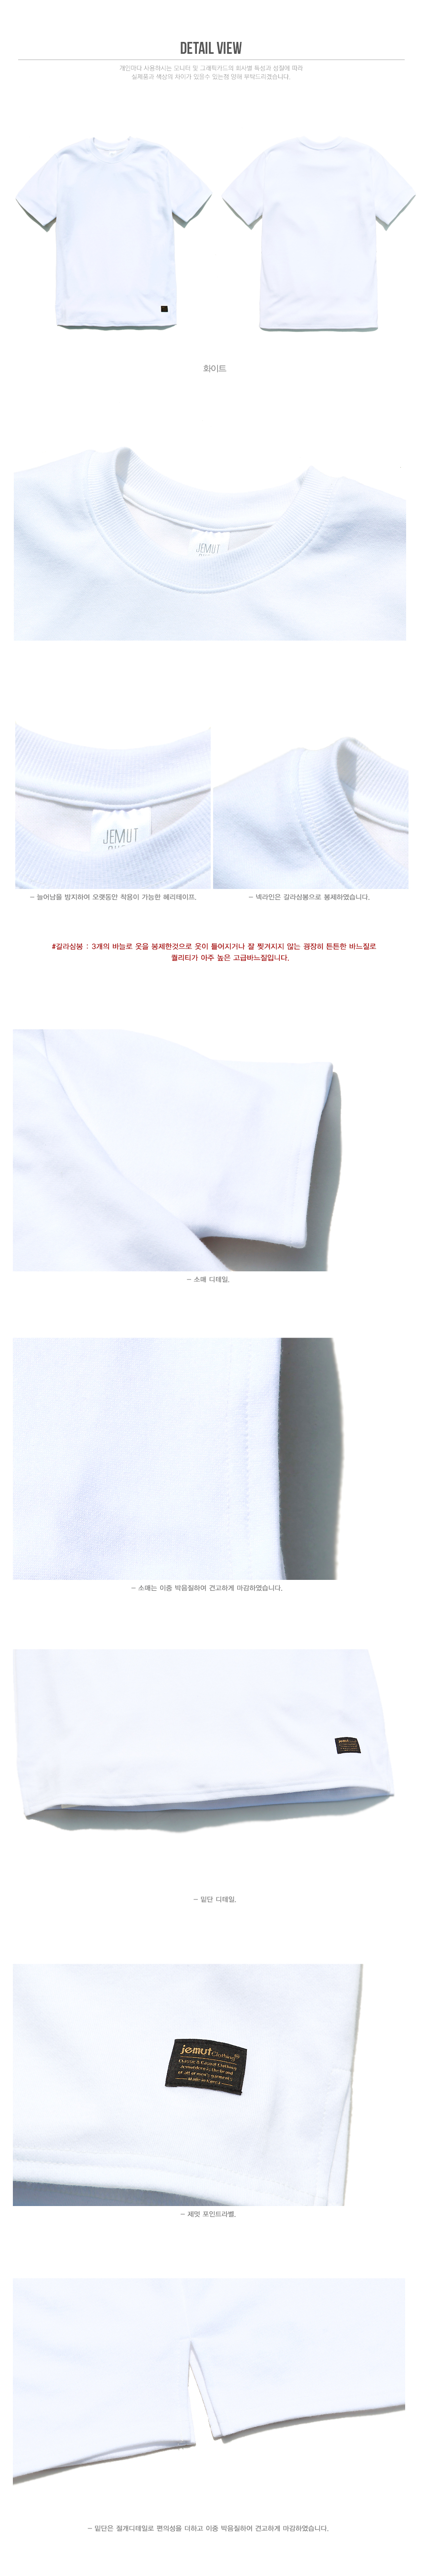 20160609_side_white_jk.jpg